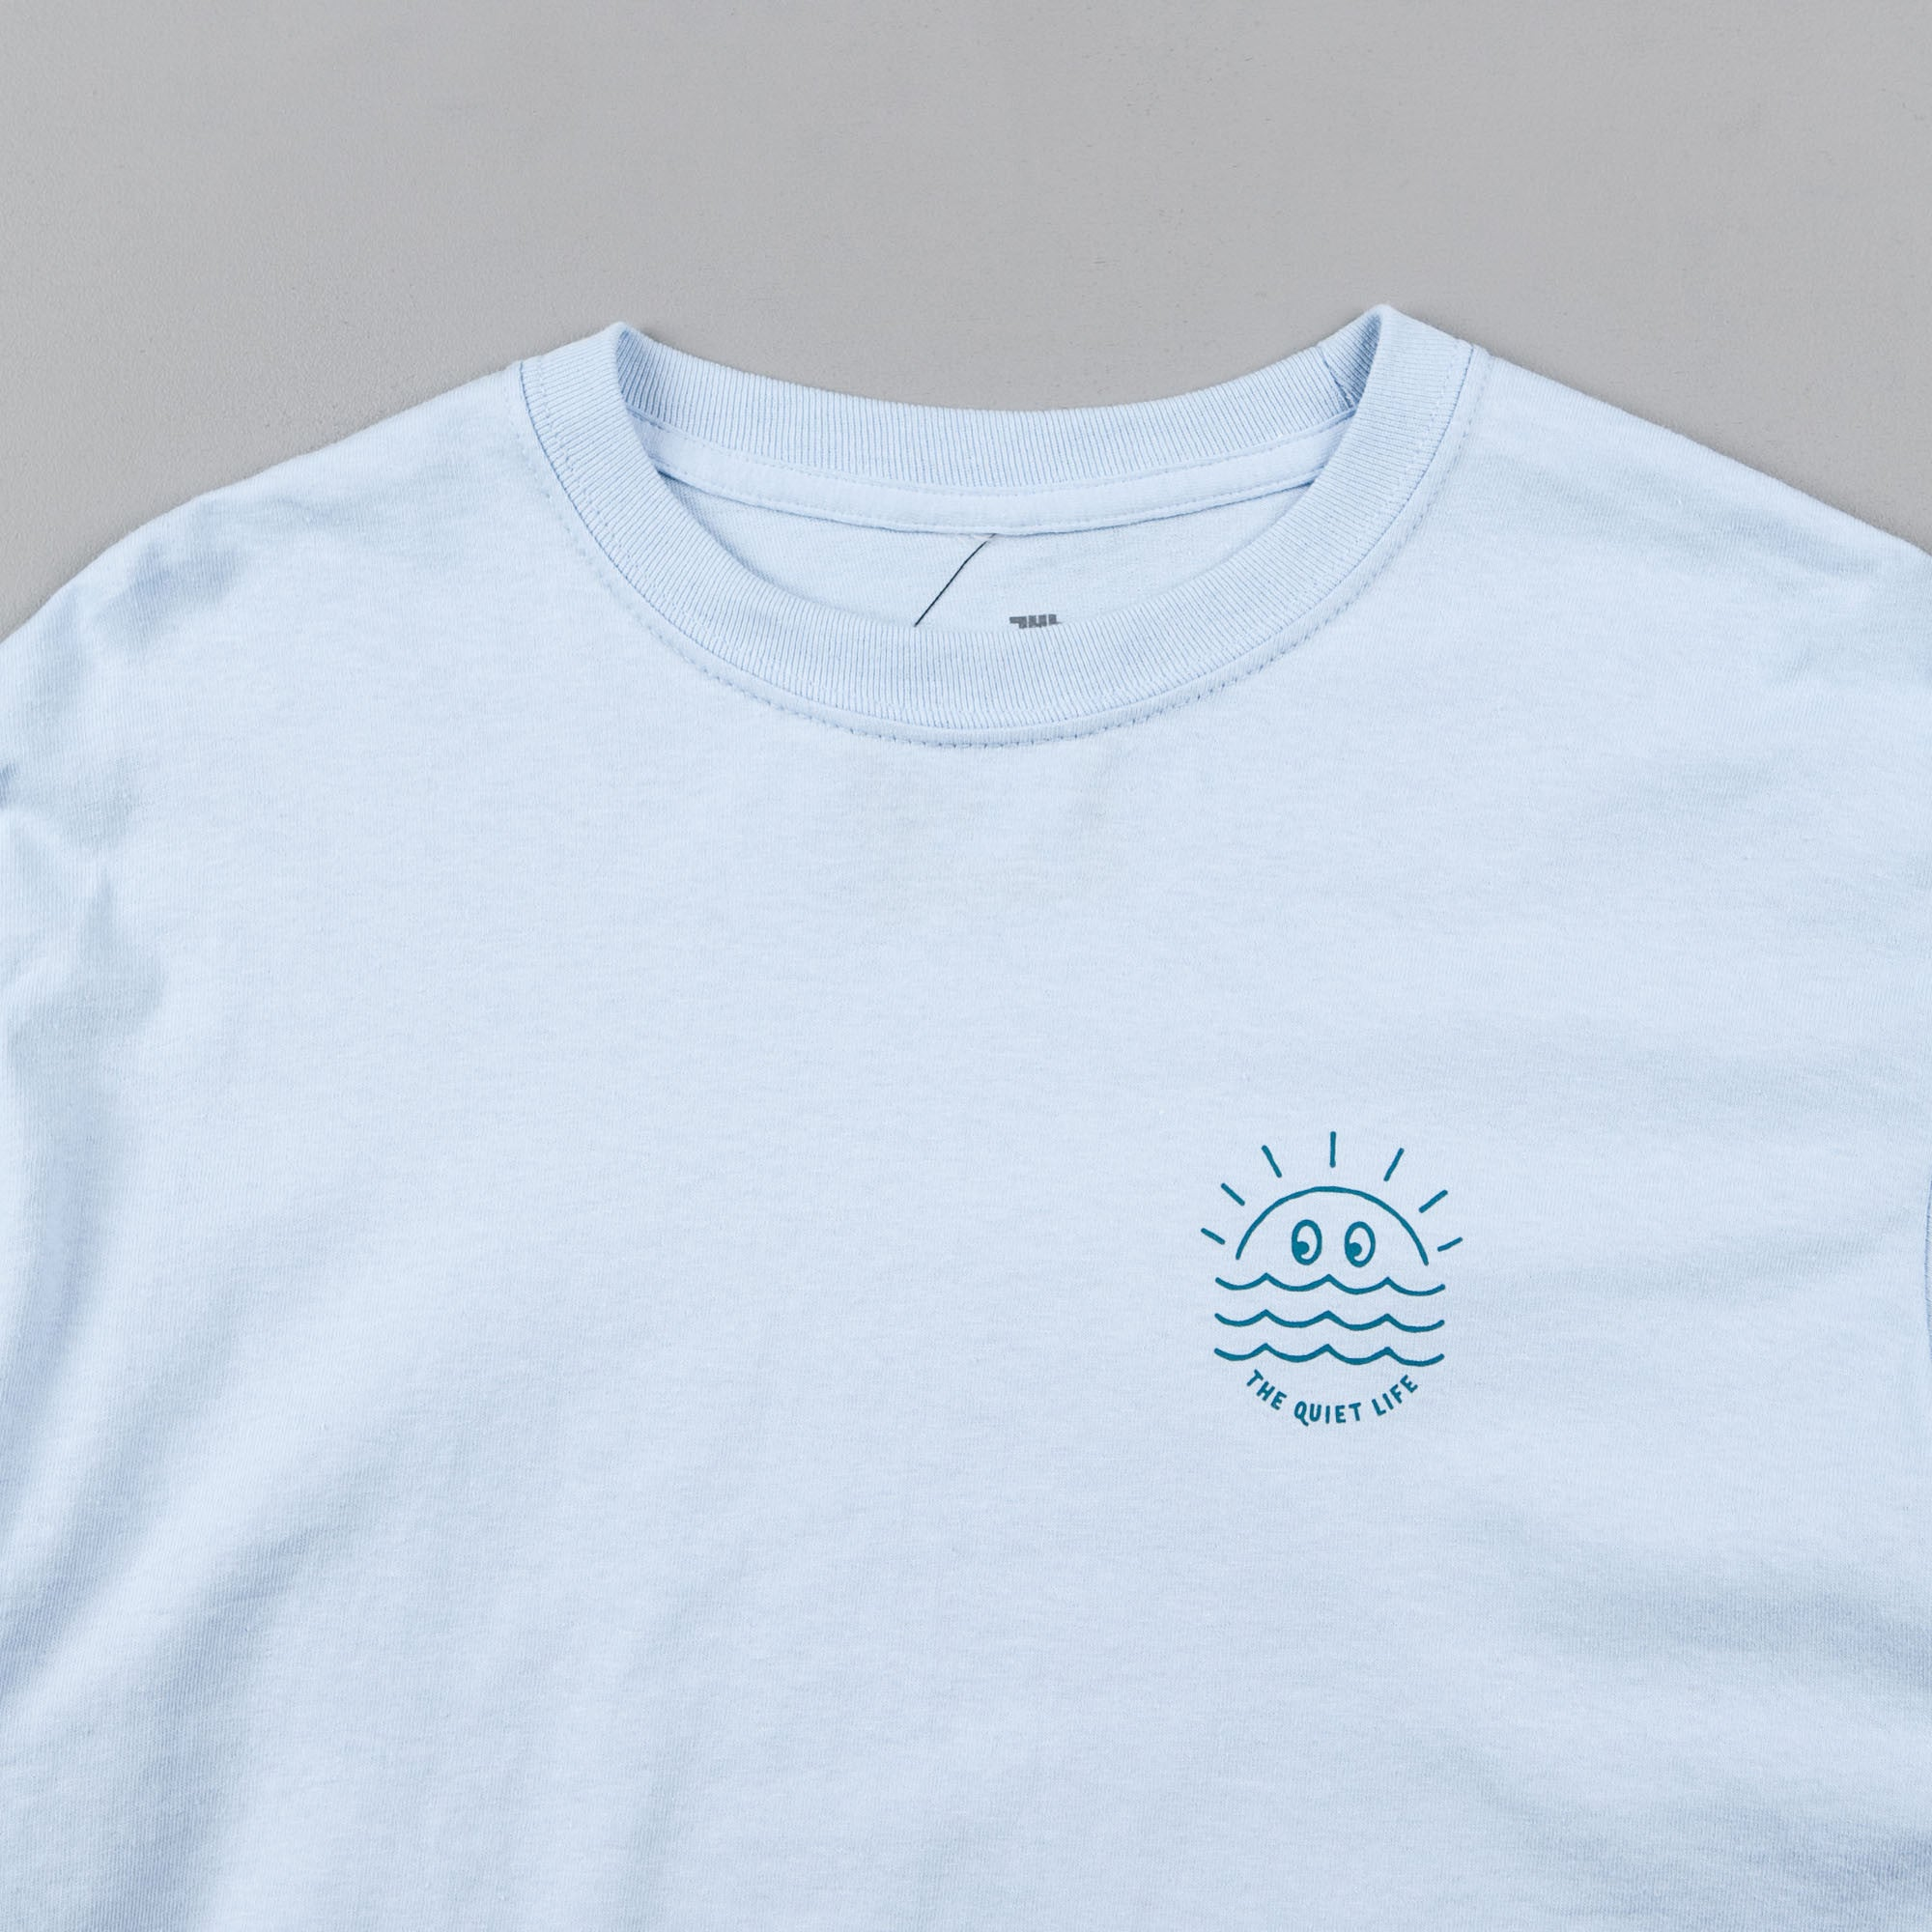 The Quiet Life Sunny Long Sleeve T-Shirt - Light Blue